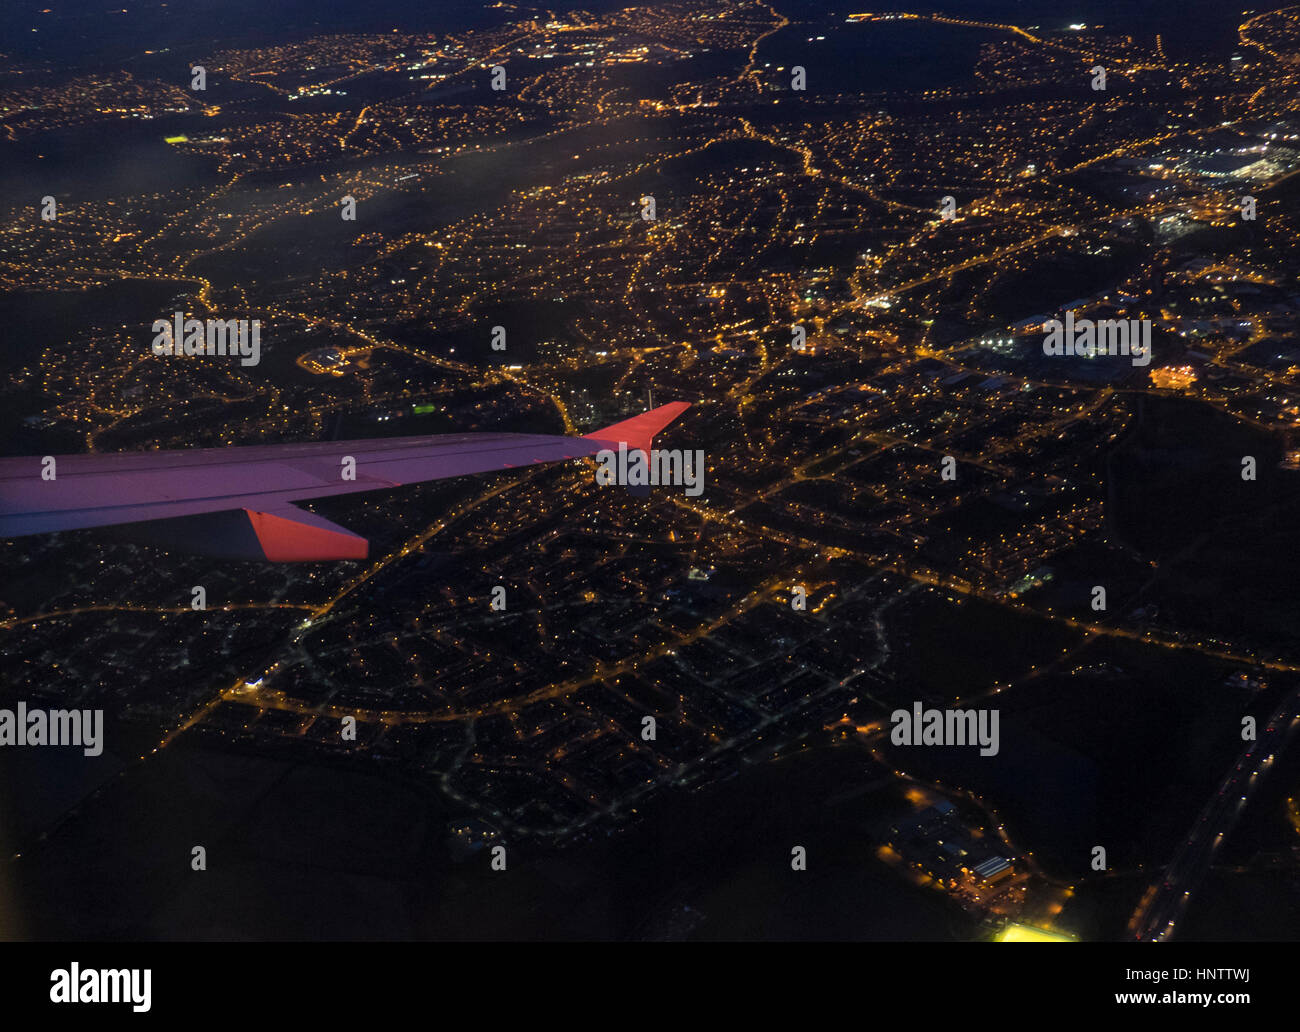 A city at night as seen from an aeroplane window - Stock Image